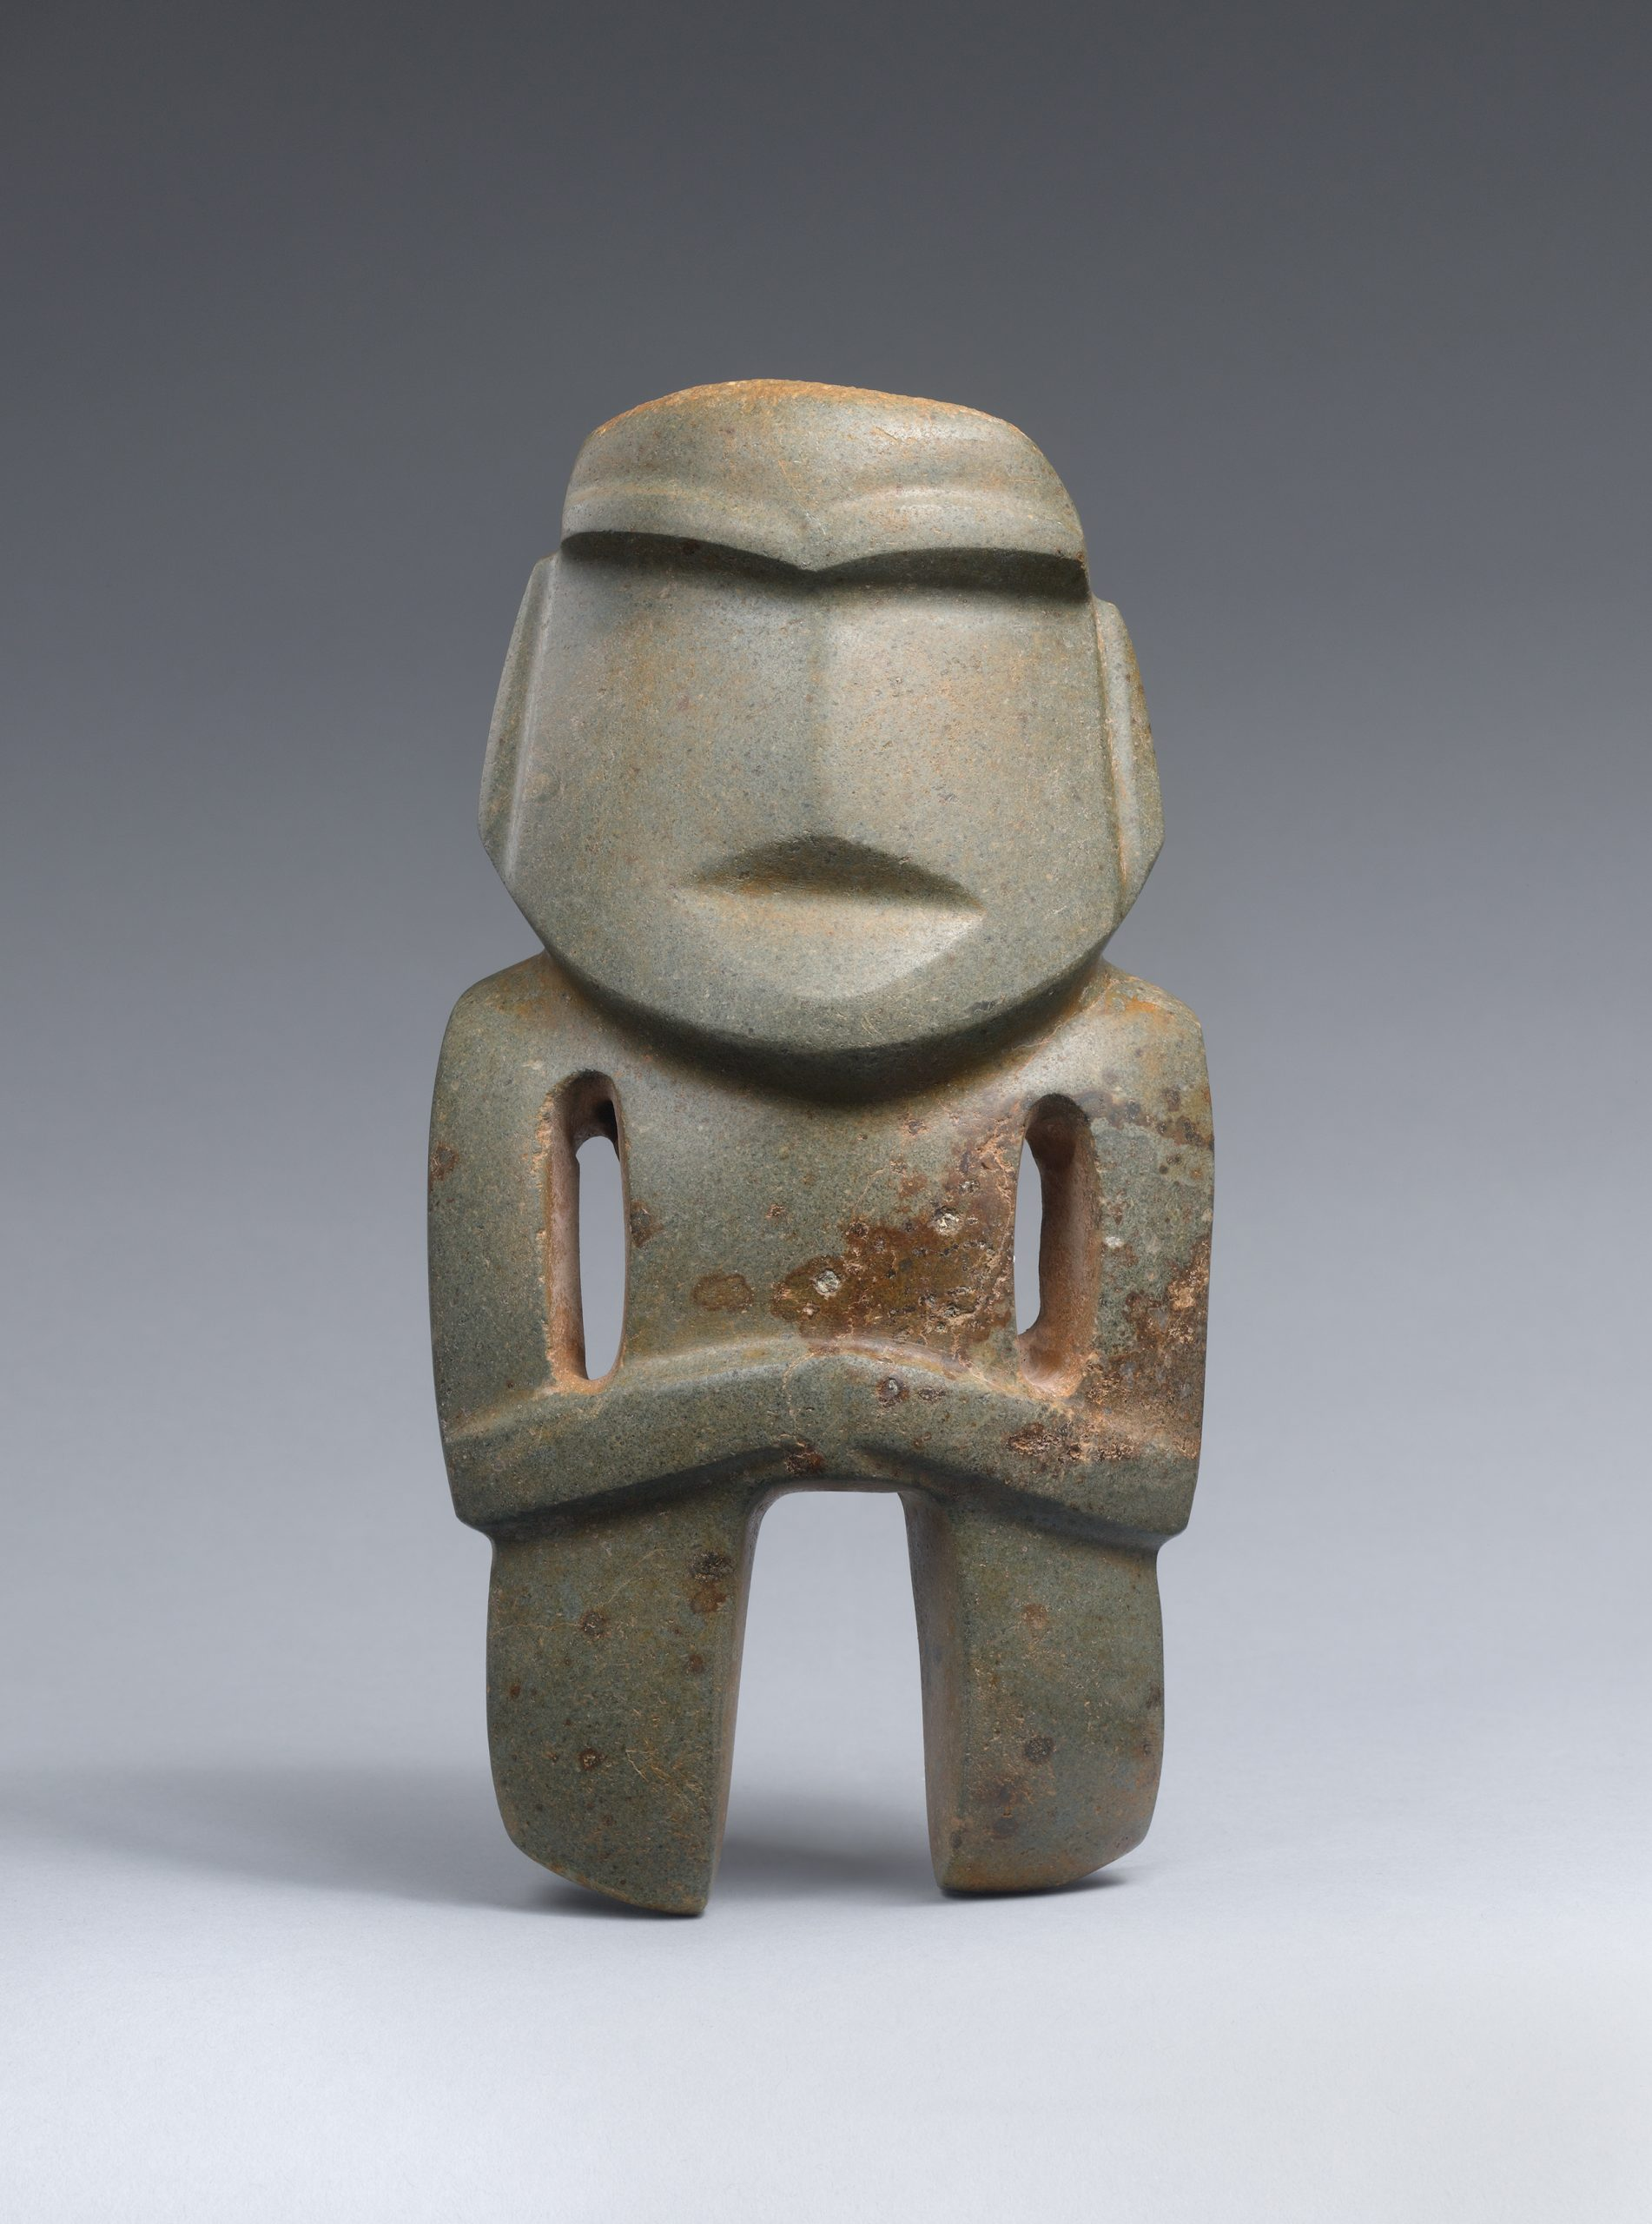 Stone sculpture of an abstracted standing figure with carved facial features, and arms resting across the torso.